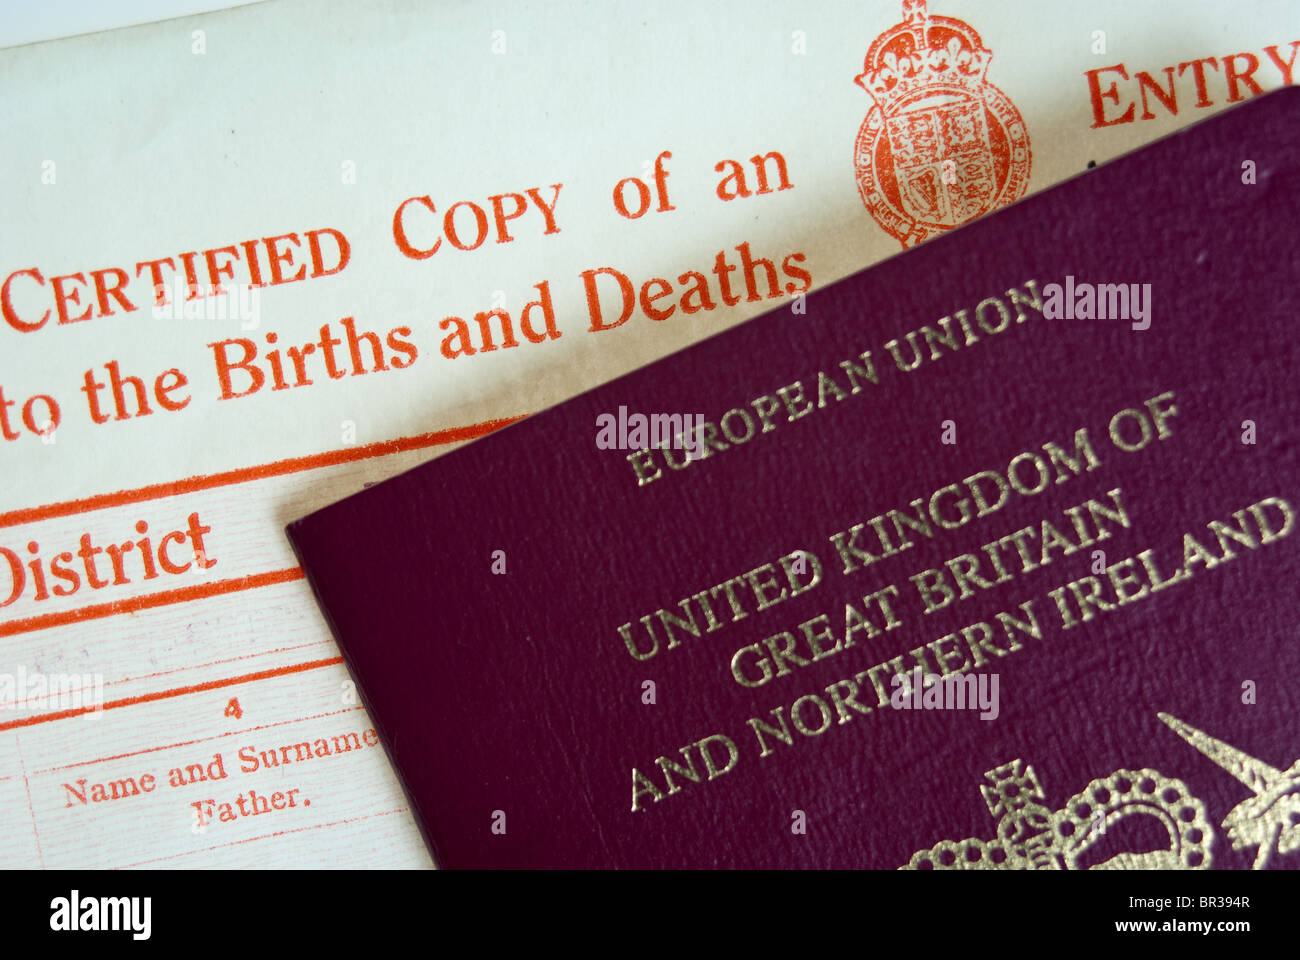 How To Get A Passport Without Birth Certificate Uk | Howsto.Co - photo#37